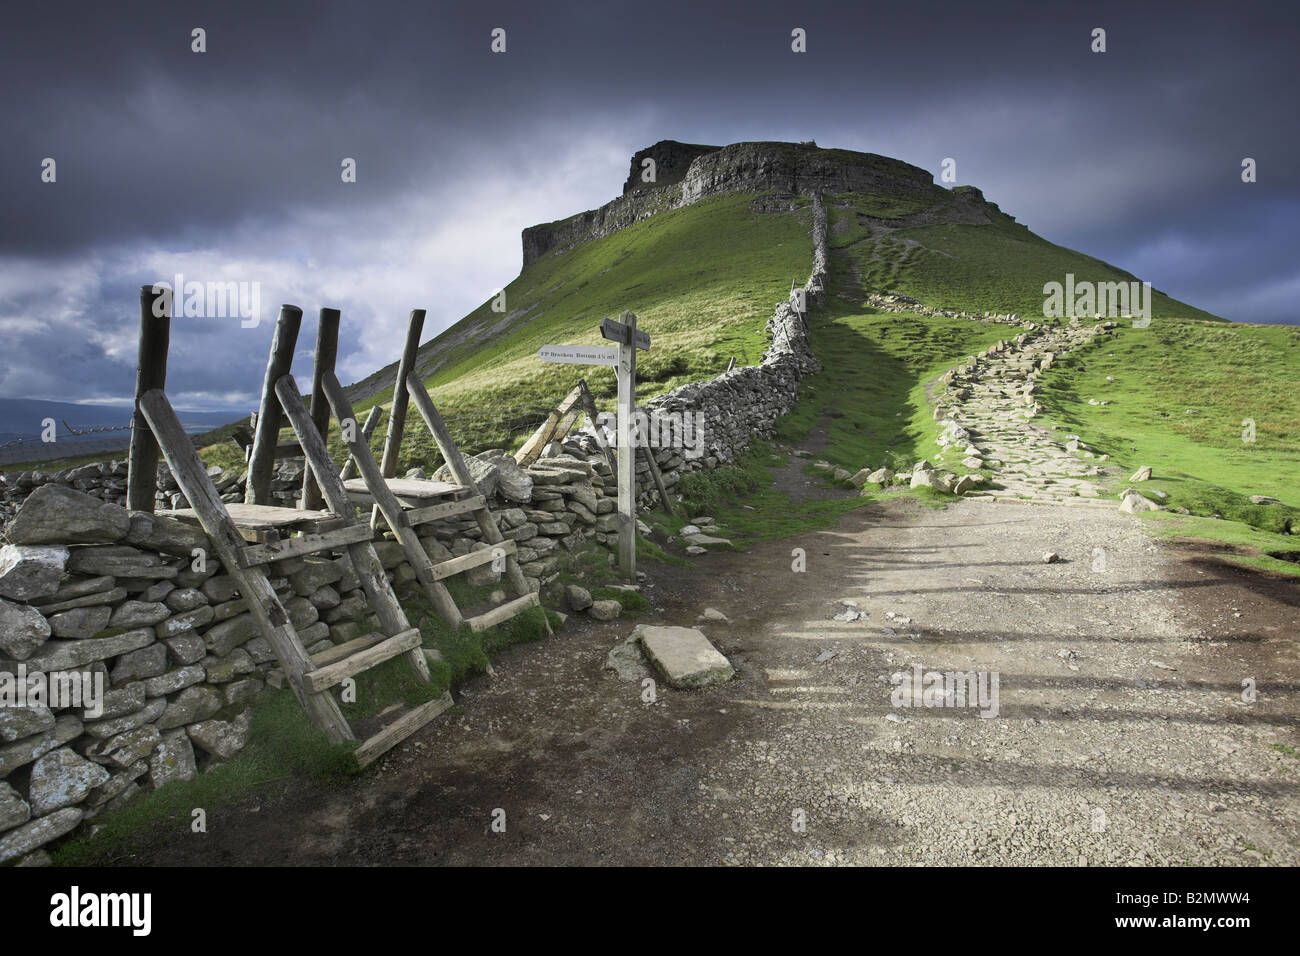 The Pennine Way footpath and distinctive peak of Pen-Y-Ghent, Ribblesdale, Yorkshire Dales, UK - Stock Image